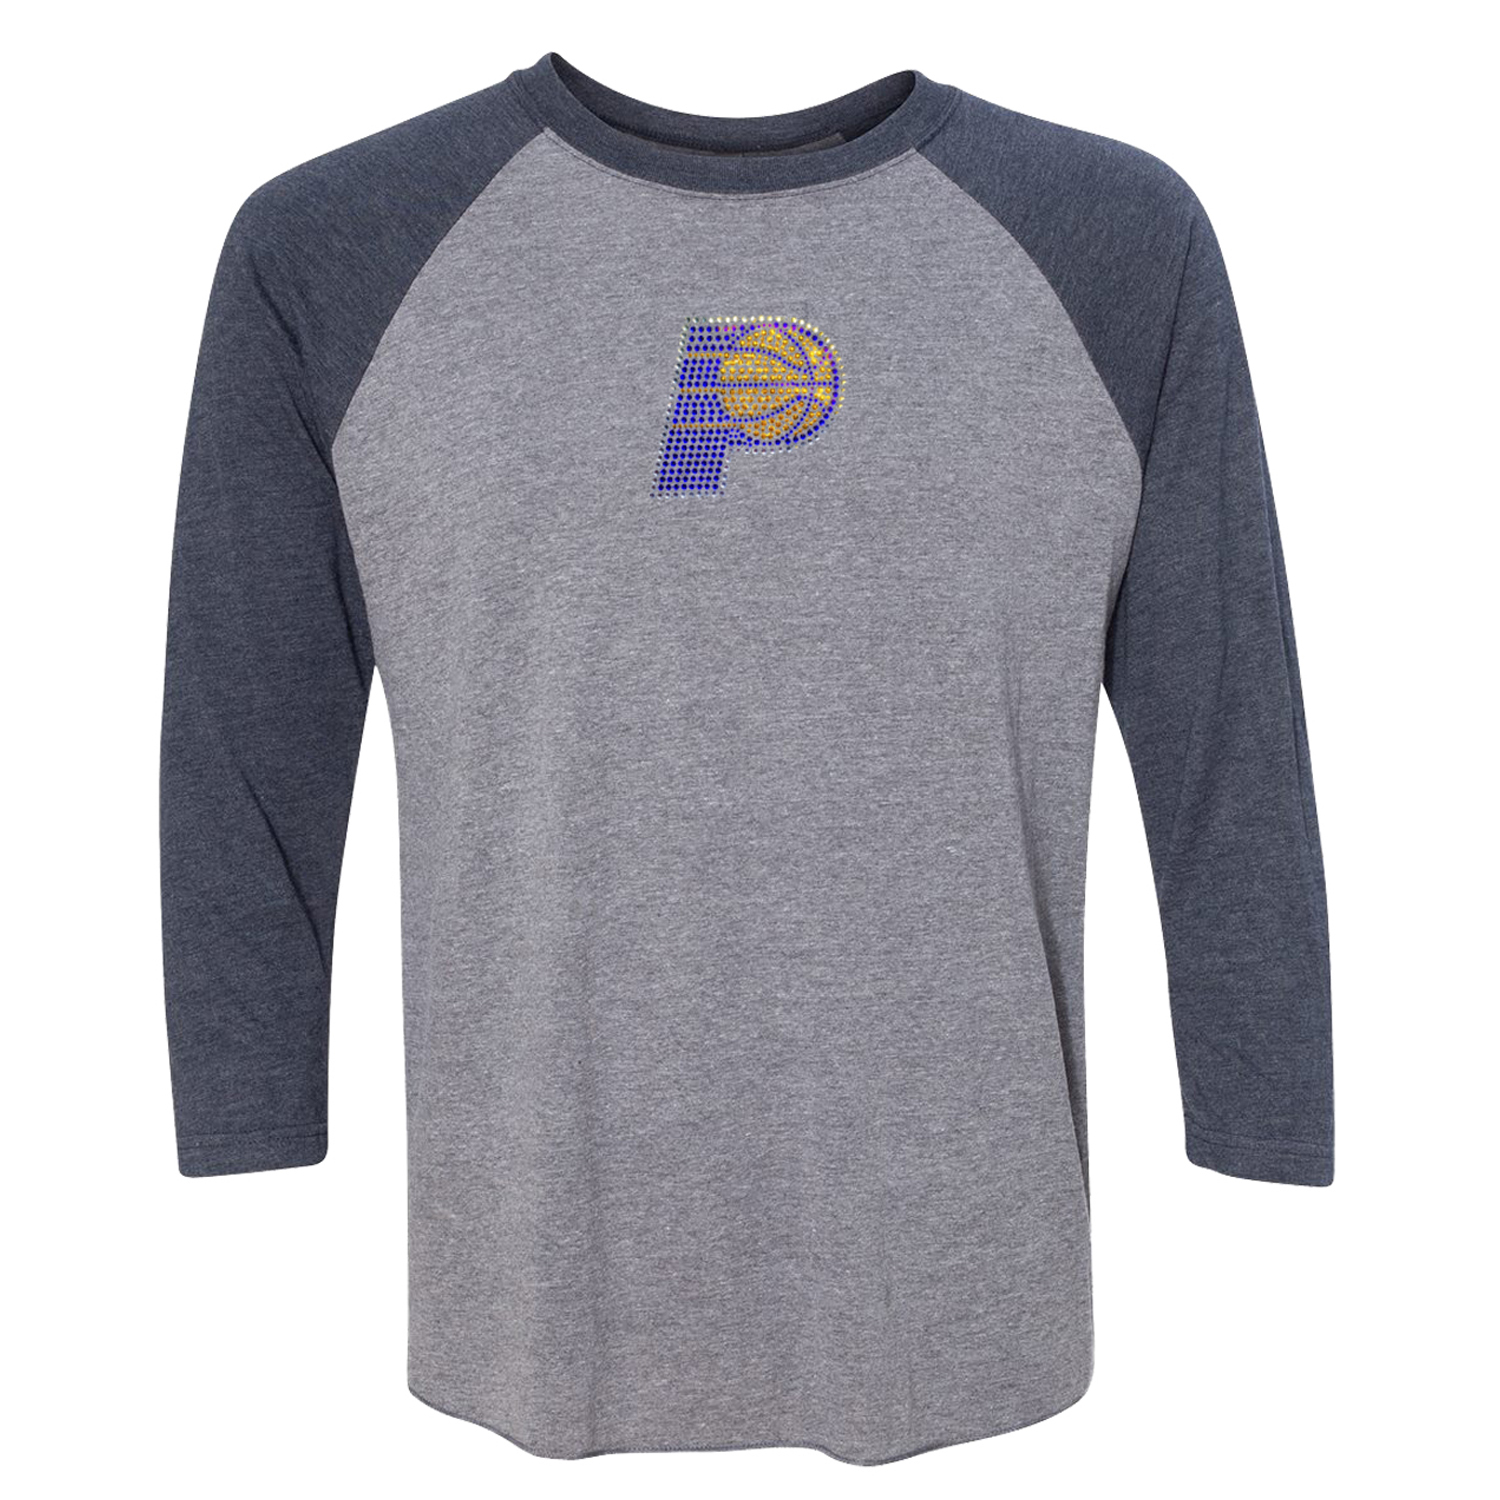 Indiana Pacers Women's Rhinestone Raglan 3/4-Sleeve T-Shirt - Gray